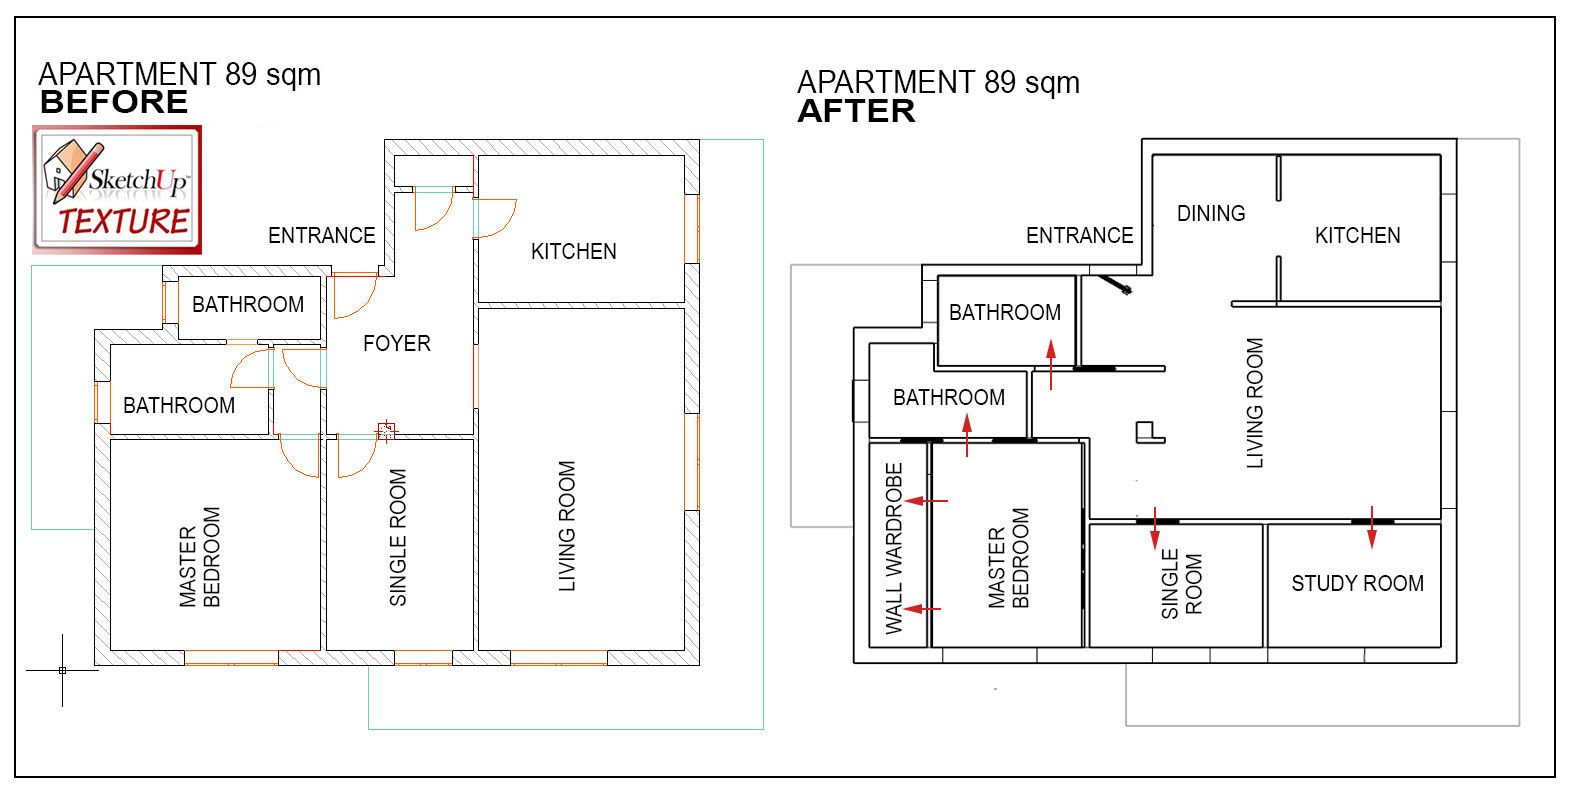 2d layout renovated apartment 89 sqm before after